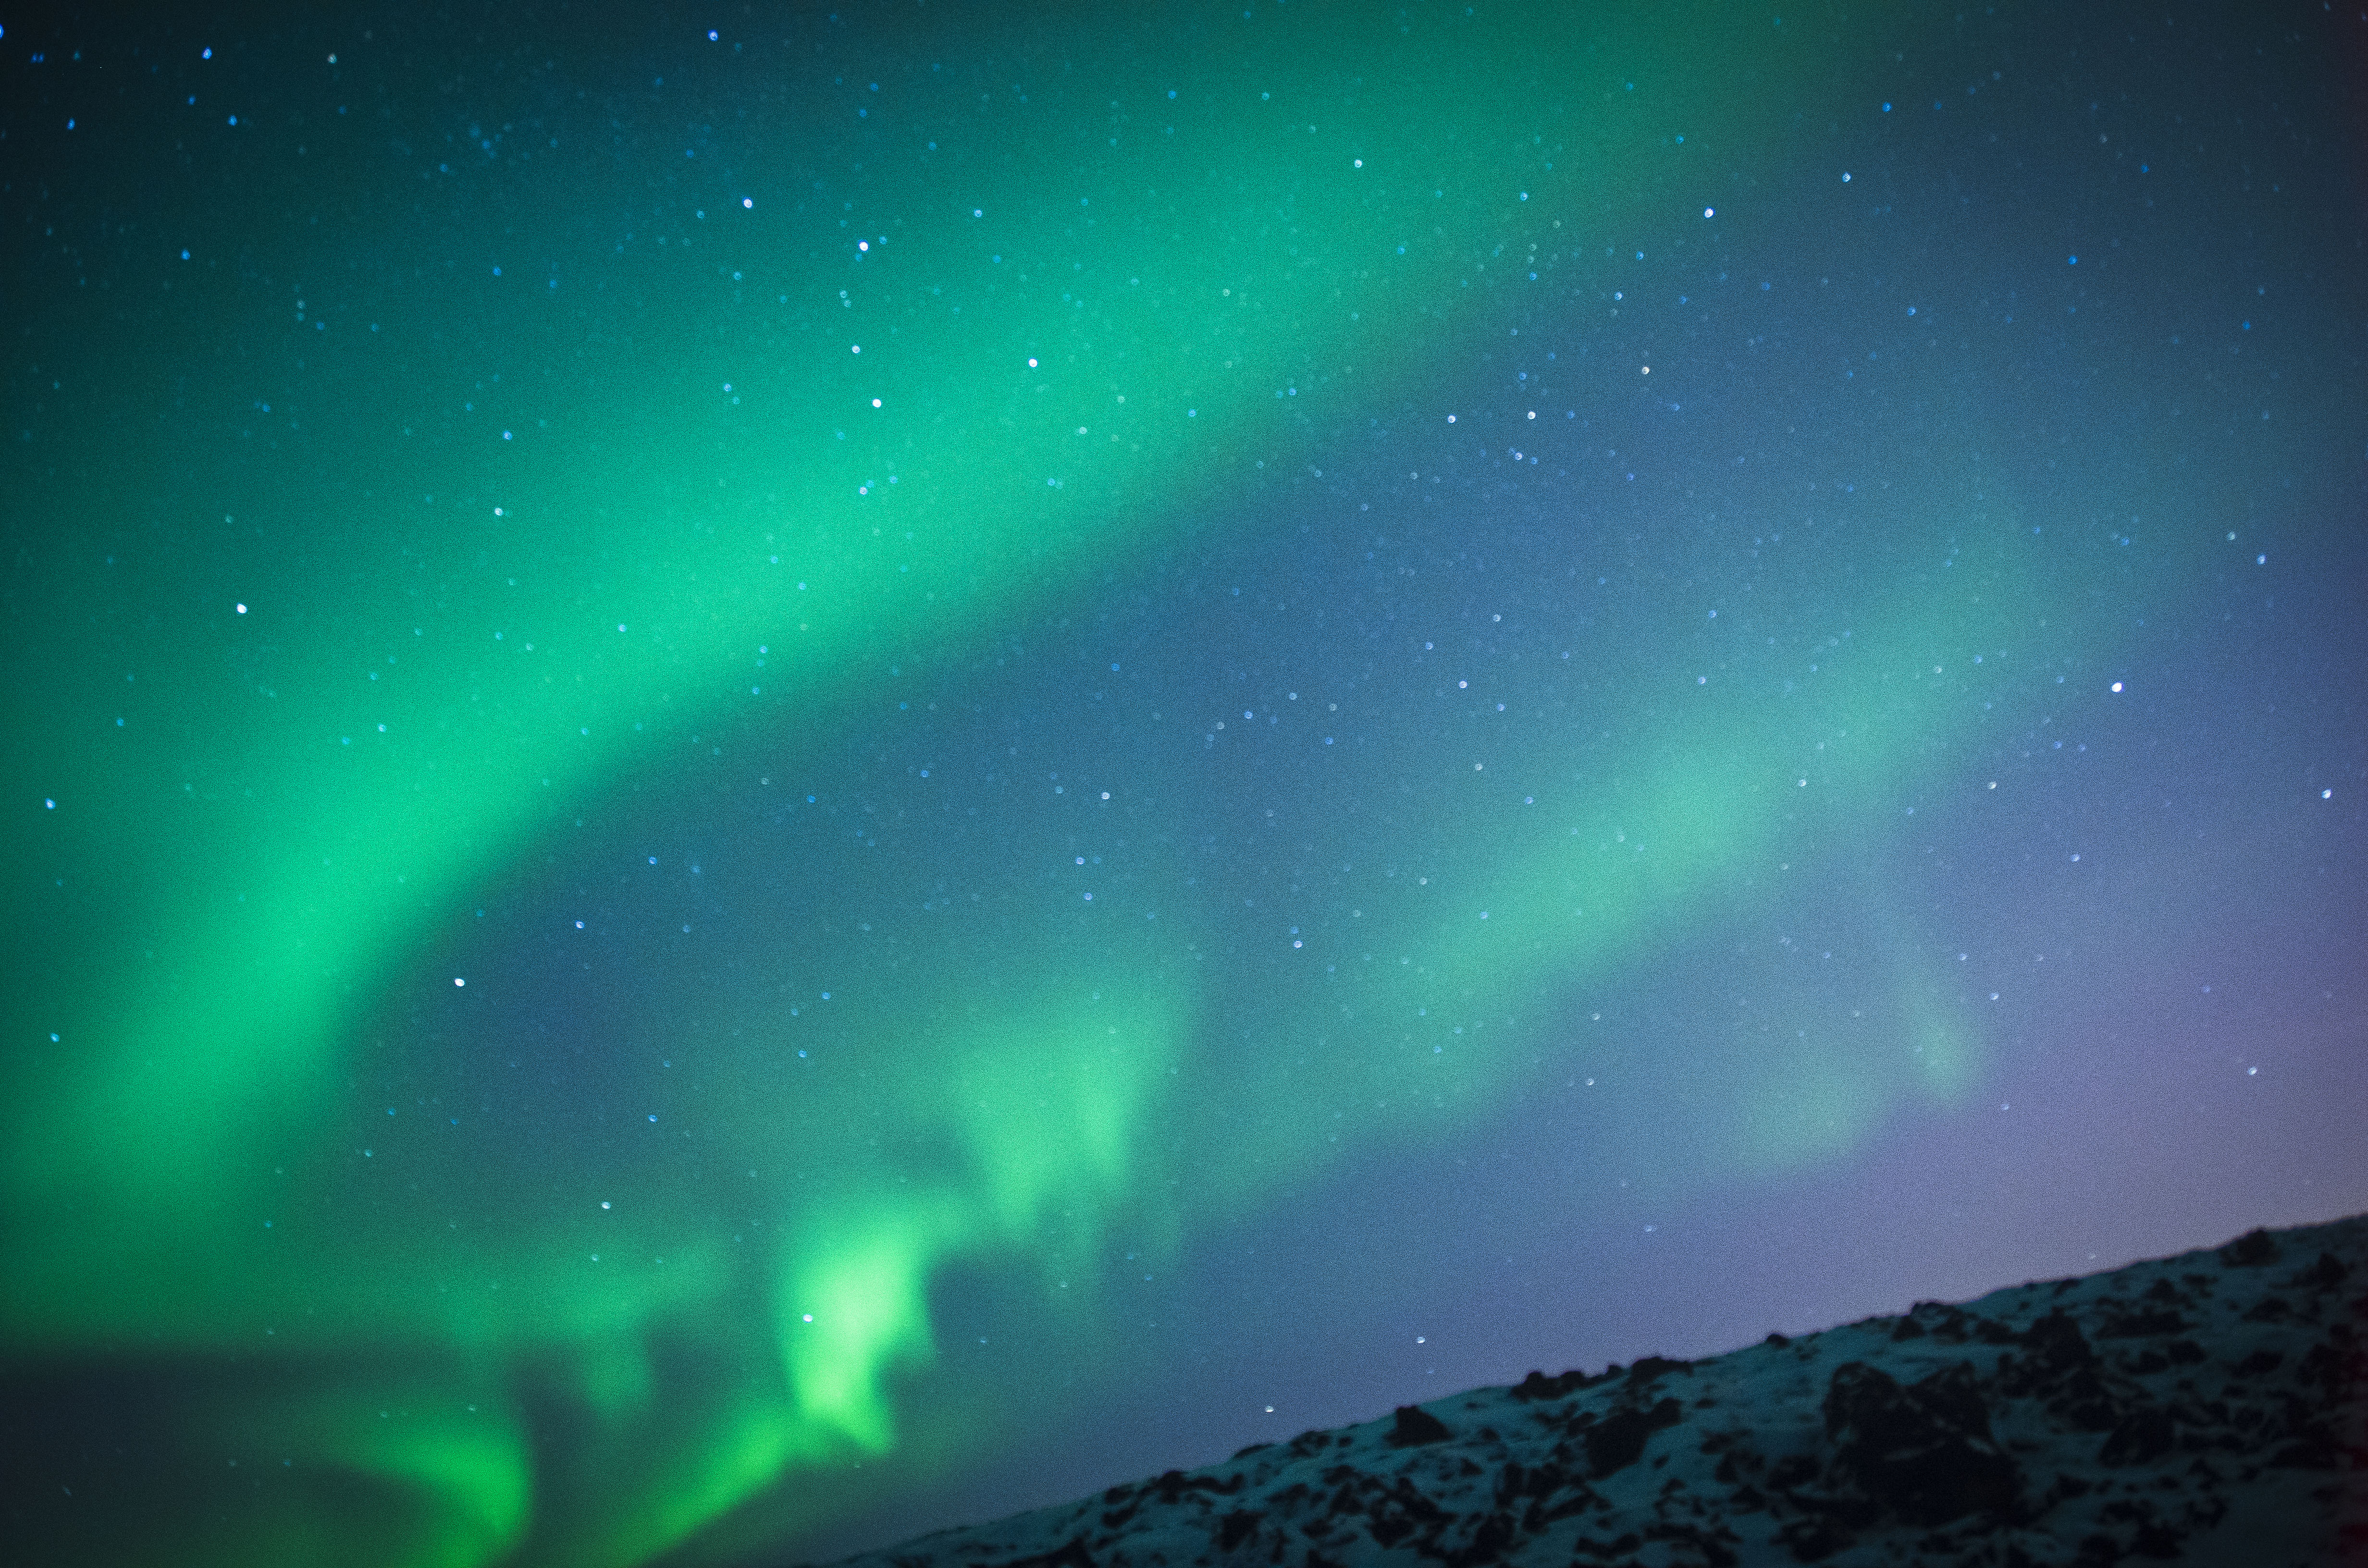 An ethereal sky of infinite stars and descending aurora lights in west Iceland's winter.